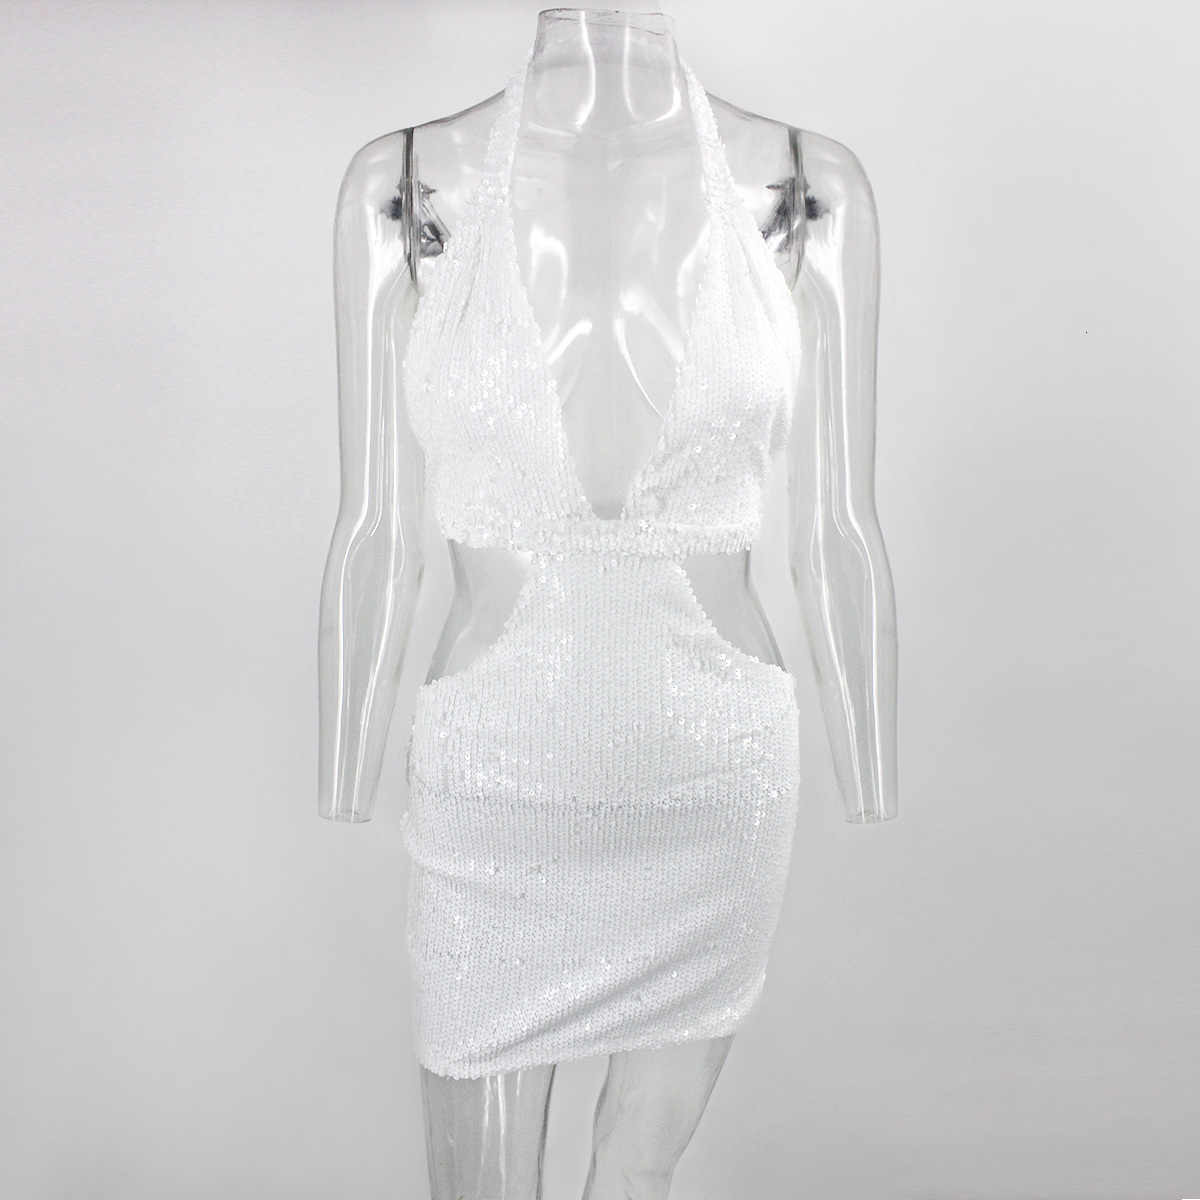 Justchicc Sequined Bodycon Dress Women Sleeveless Sexy White Dress Elegant Hollow Out Vestidos Party Mini Dress Clothes Set 2020